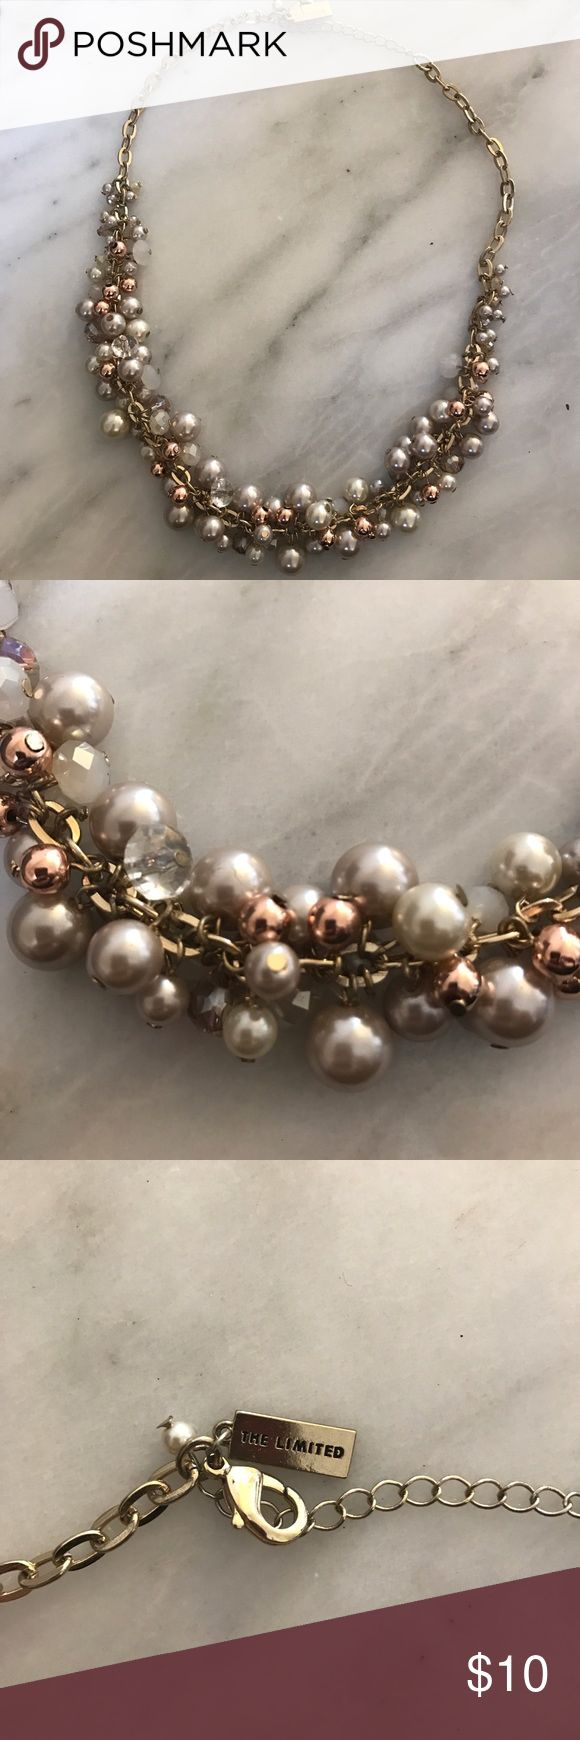 Chunky Pearl Necklace Chunky pearl necklace from the Limited. Great condition! The Limited Jewelry Necklaces